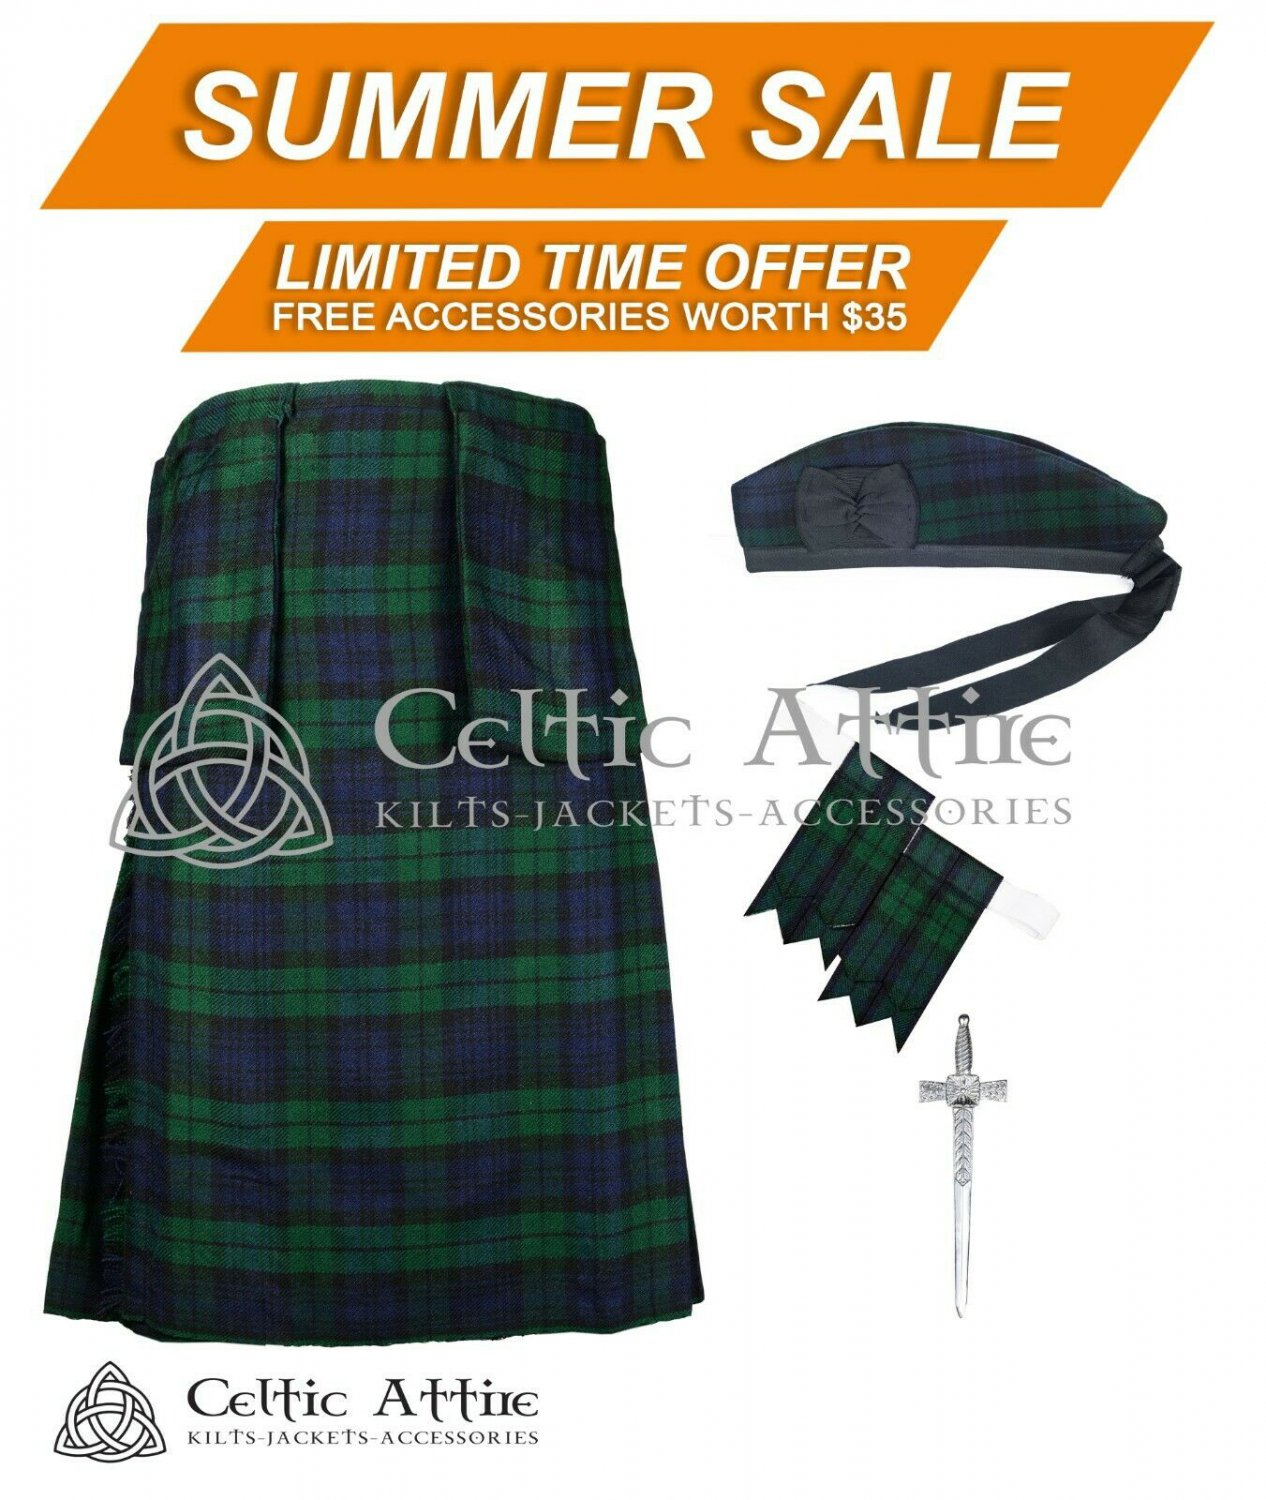 Premium - Black Watch Fabric 16 Oz - Scottish 8 Yard Tartan Kilt and Accessories 40 waist